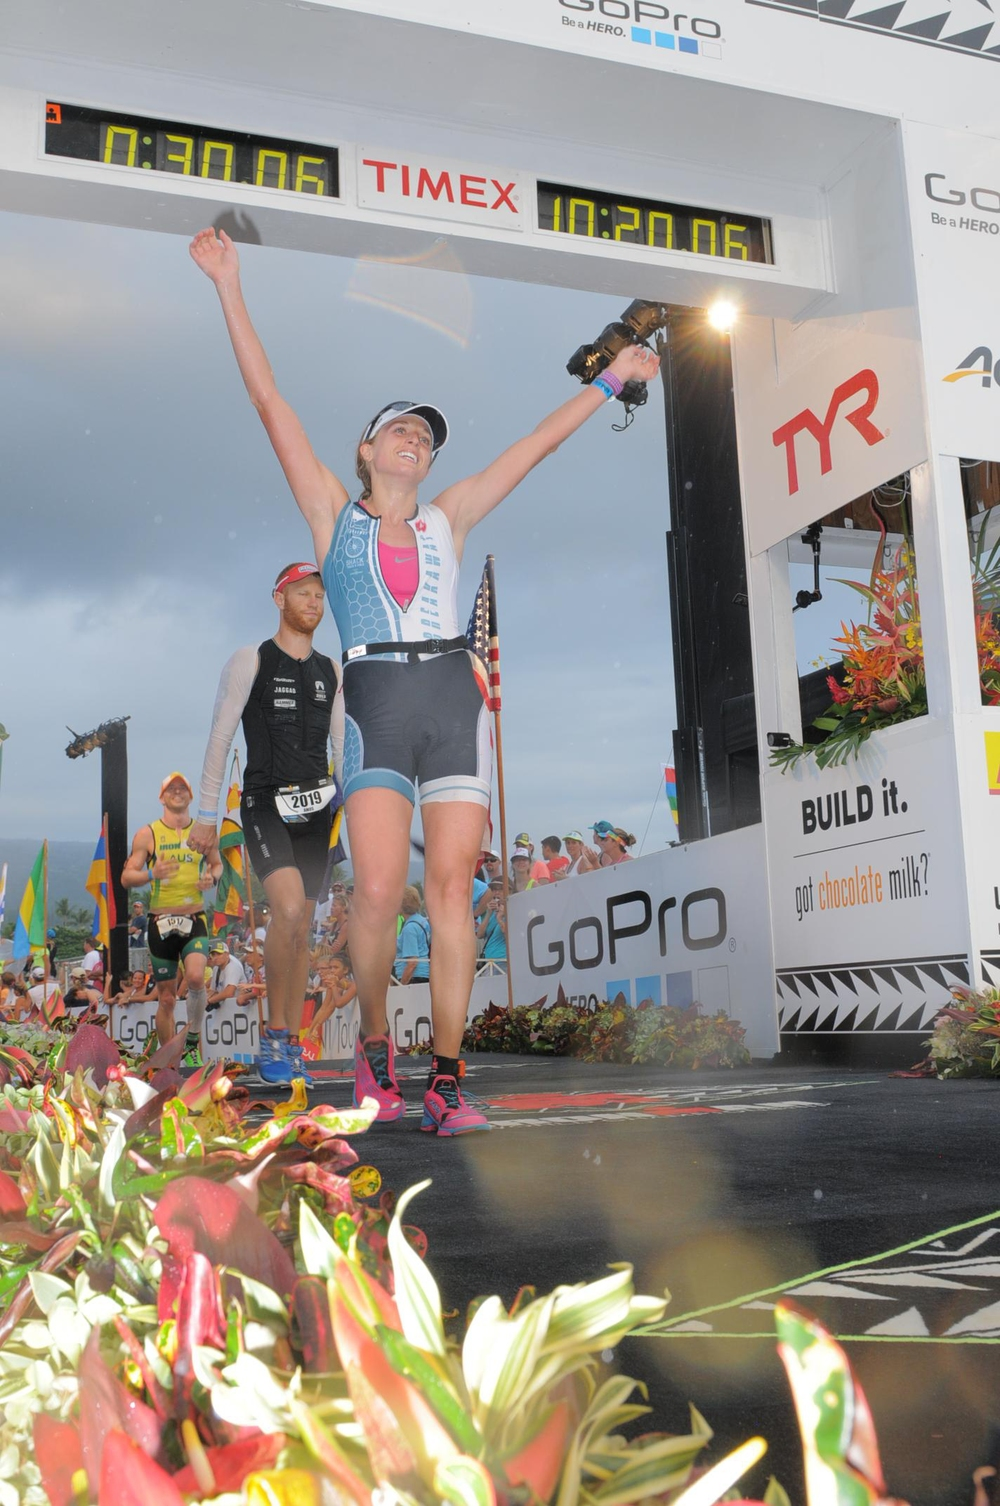 Emily Sherrard, You are an Ironman!